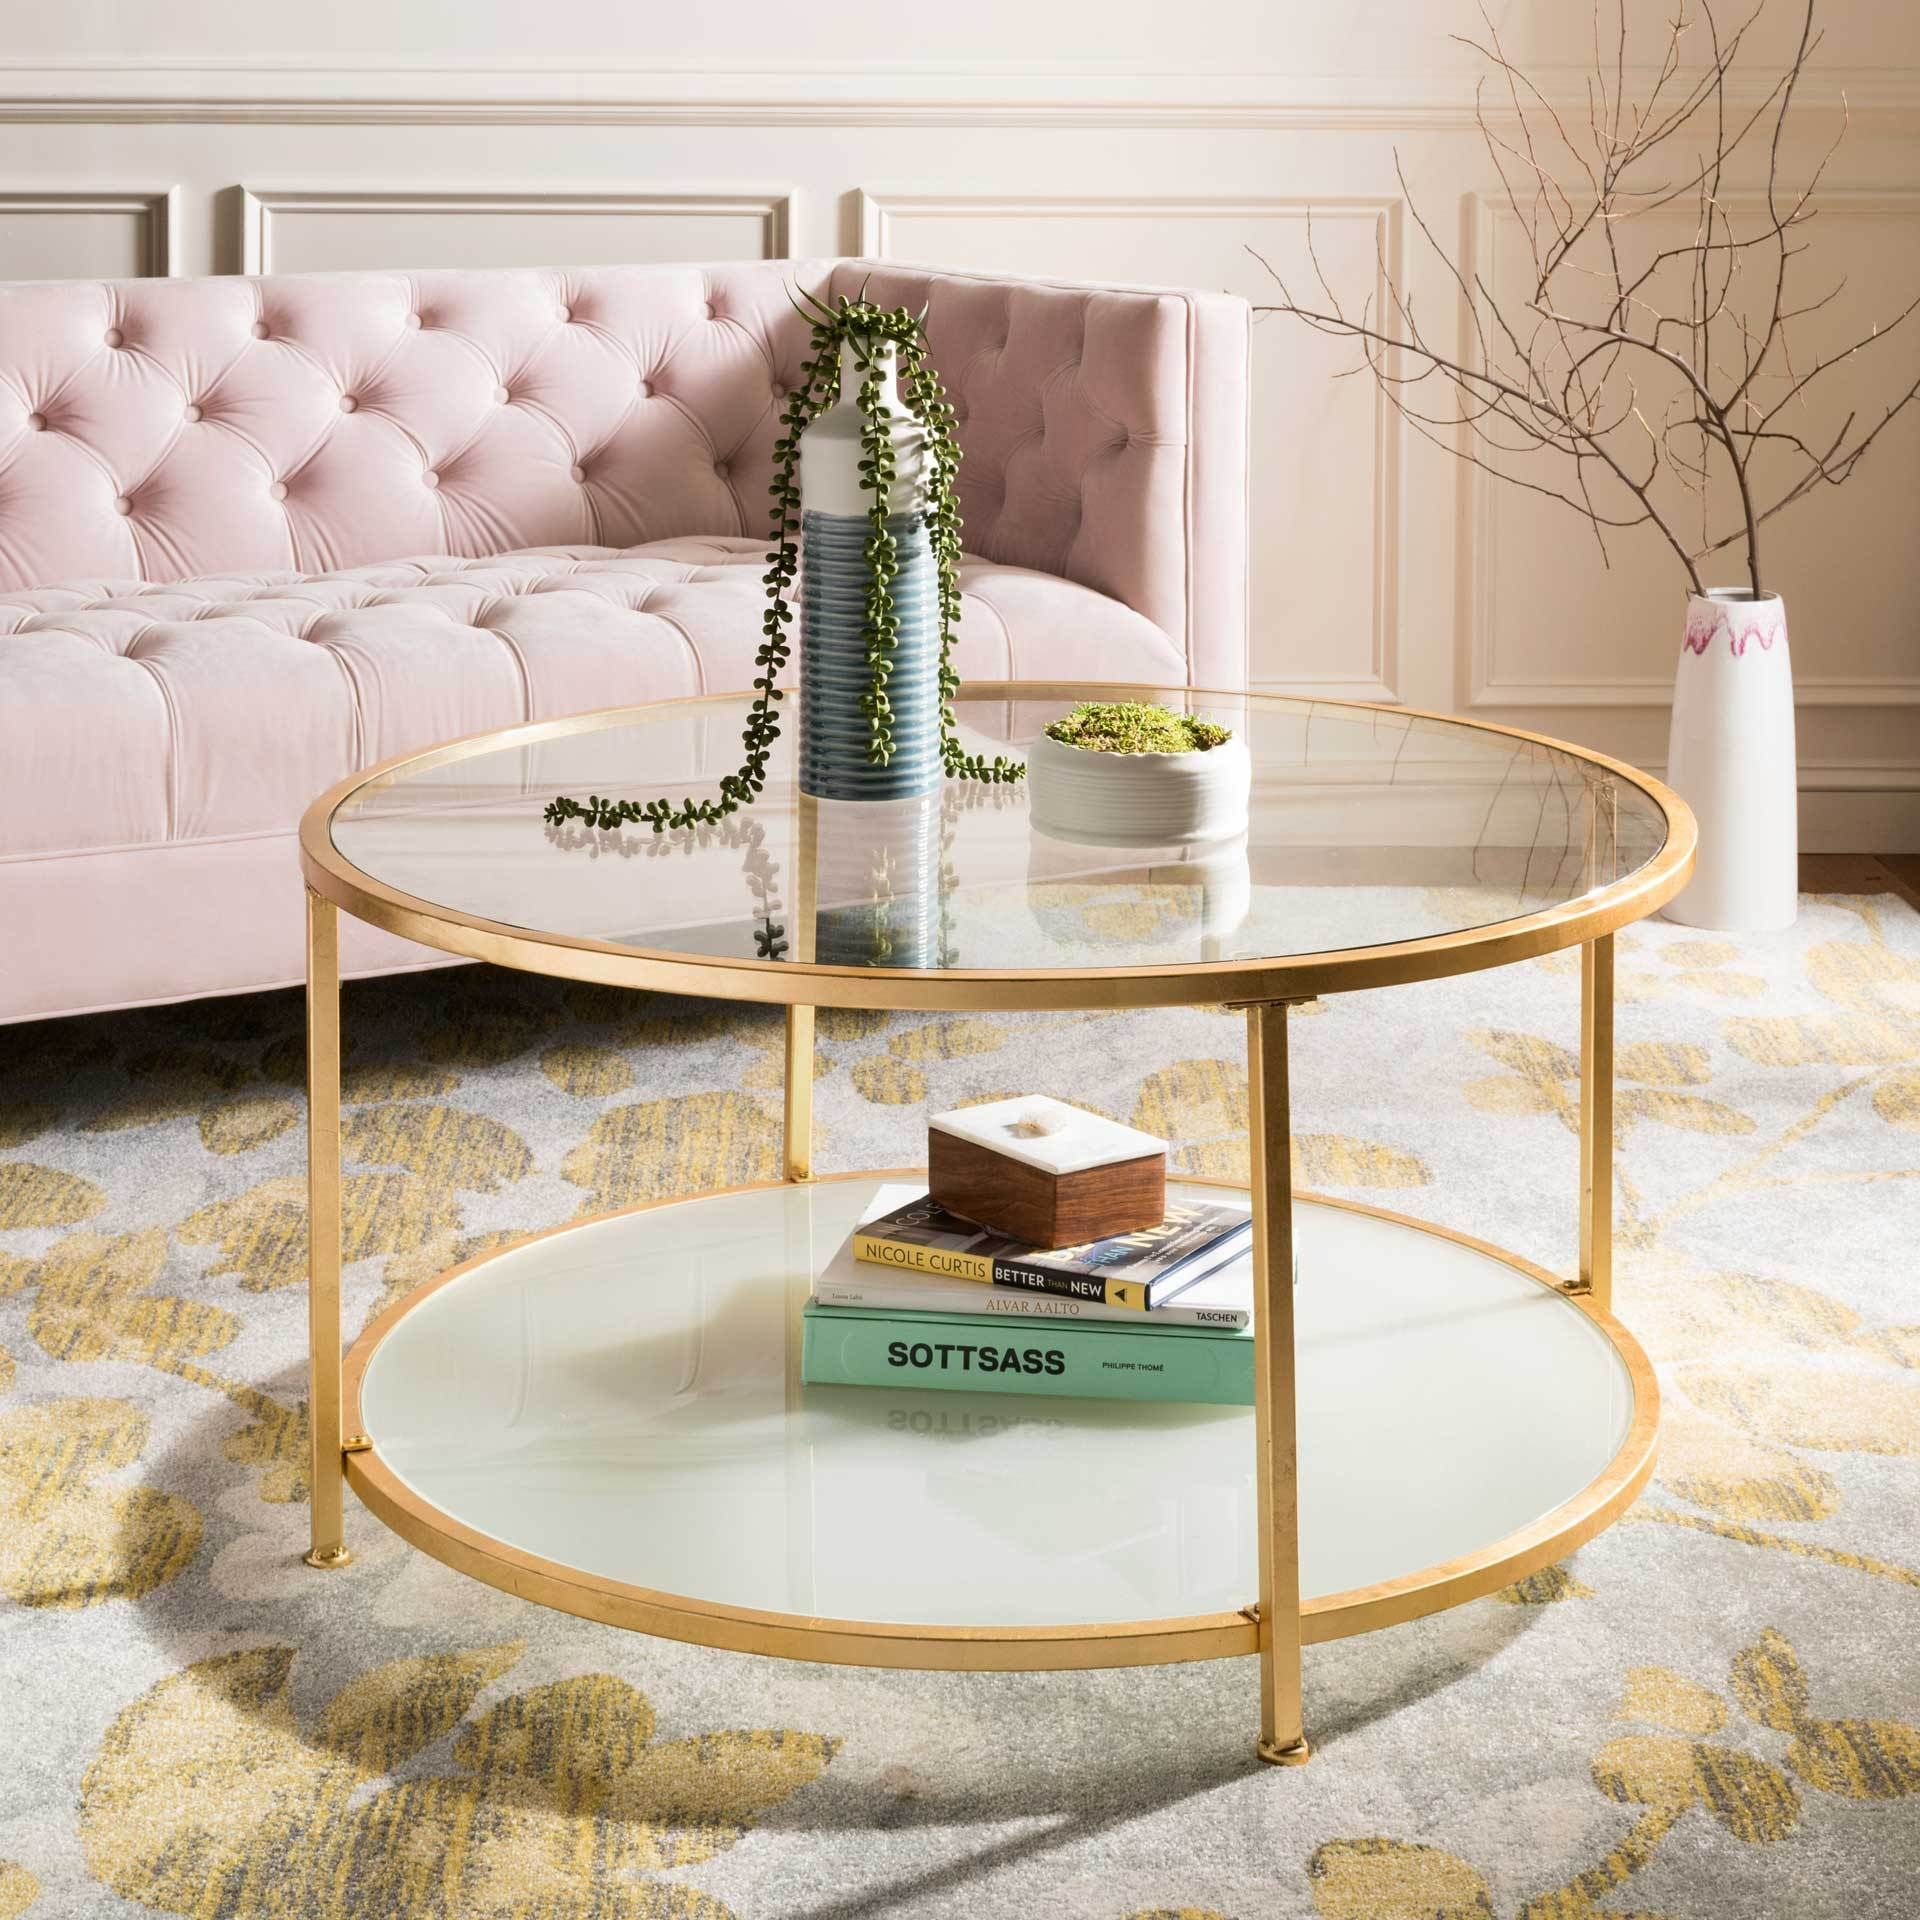 Ivanna 2 Tier Round Coffee Table In 2021 Gold Coffee Table Coffee Table With Shelf Coffee Table [ 1920 x 1920 Pixel ]